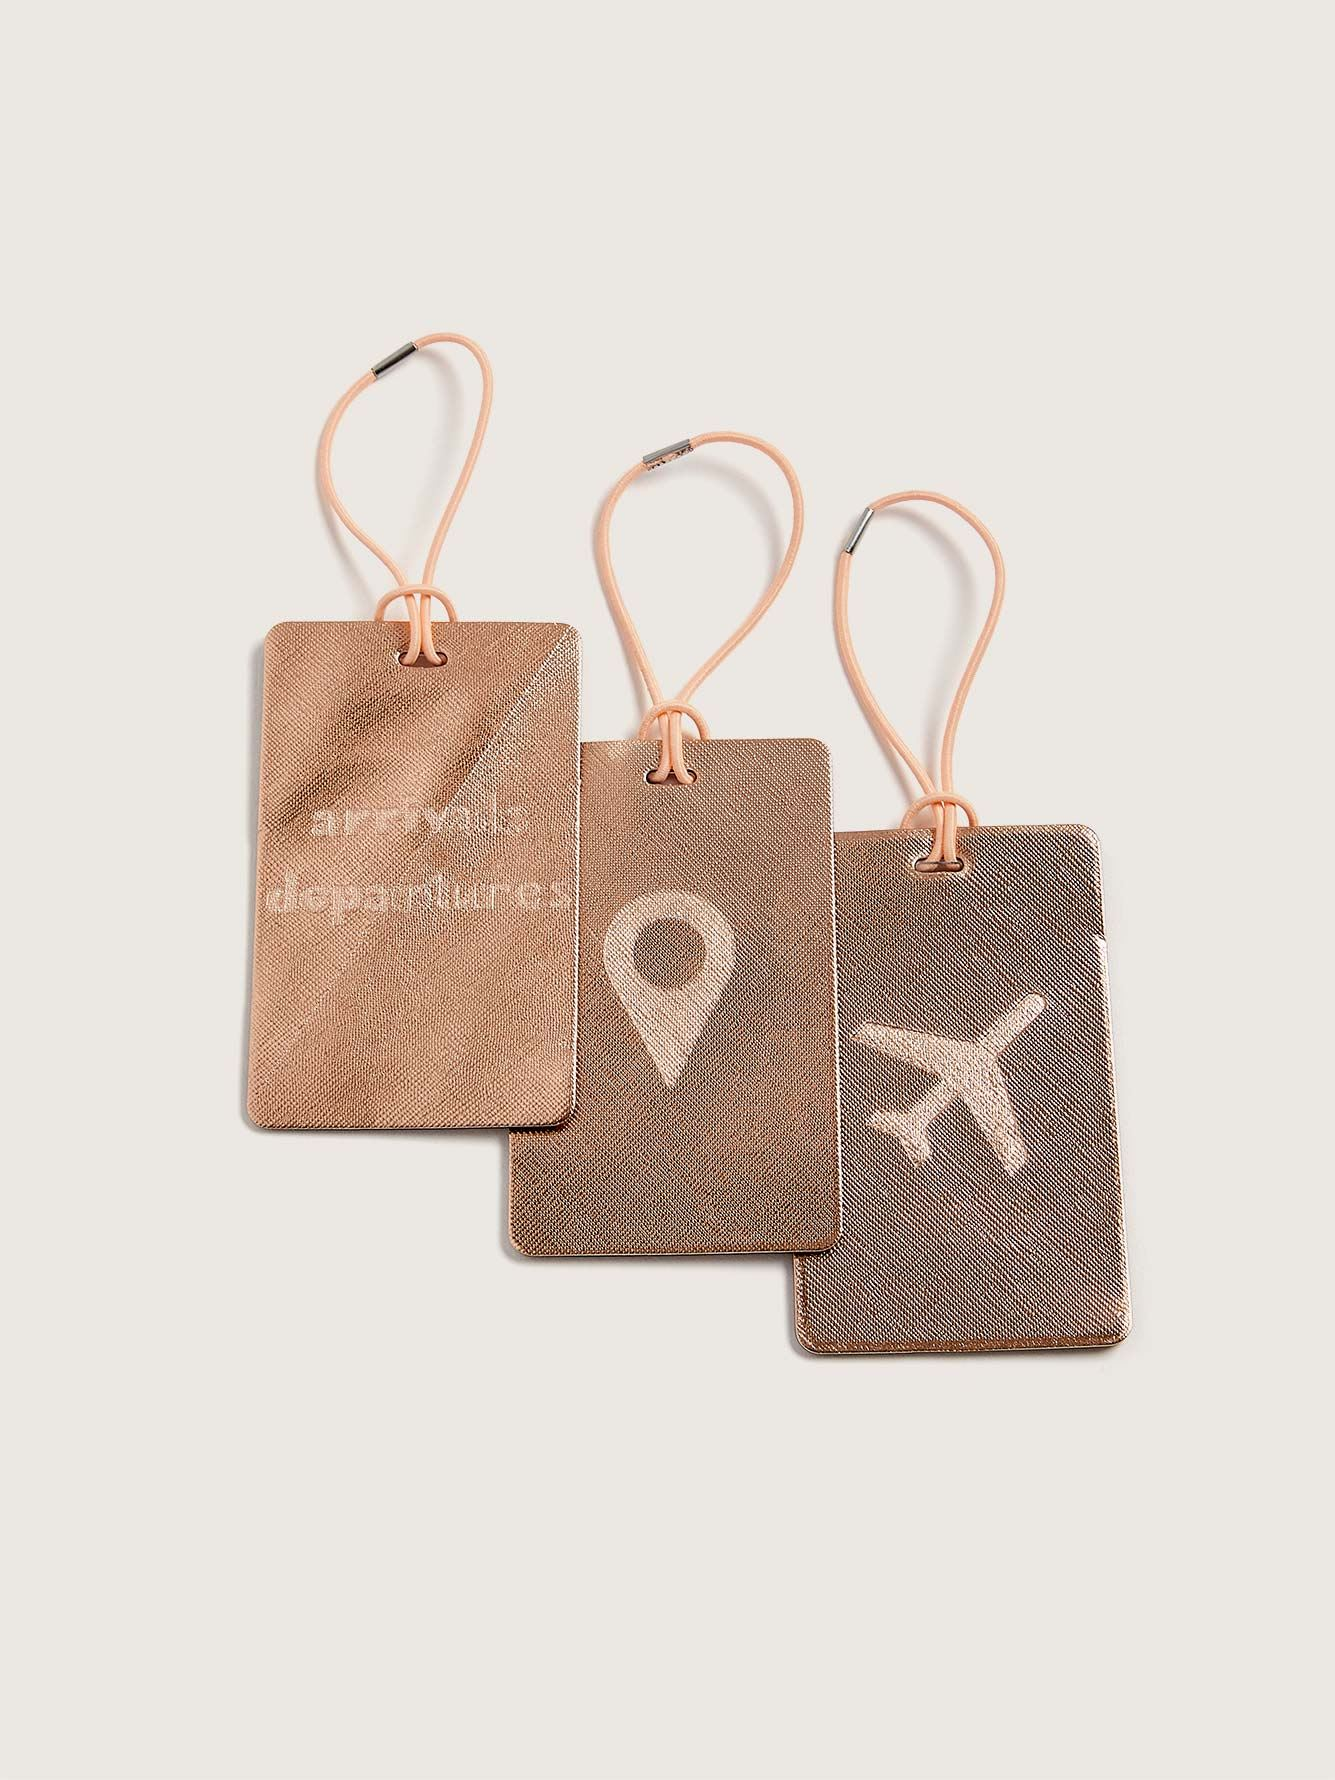 Set of 3 Luggage Tags - MyTagalongs